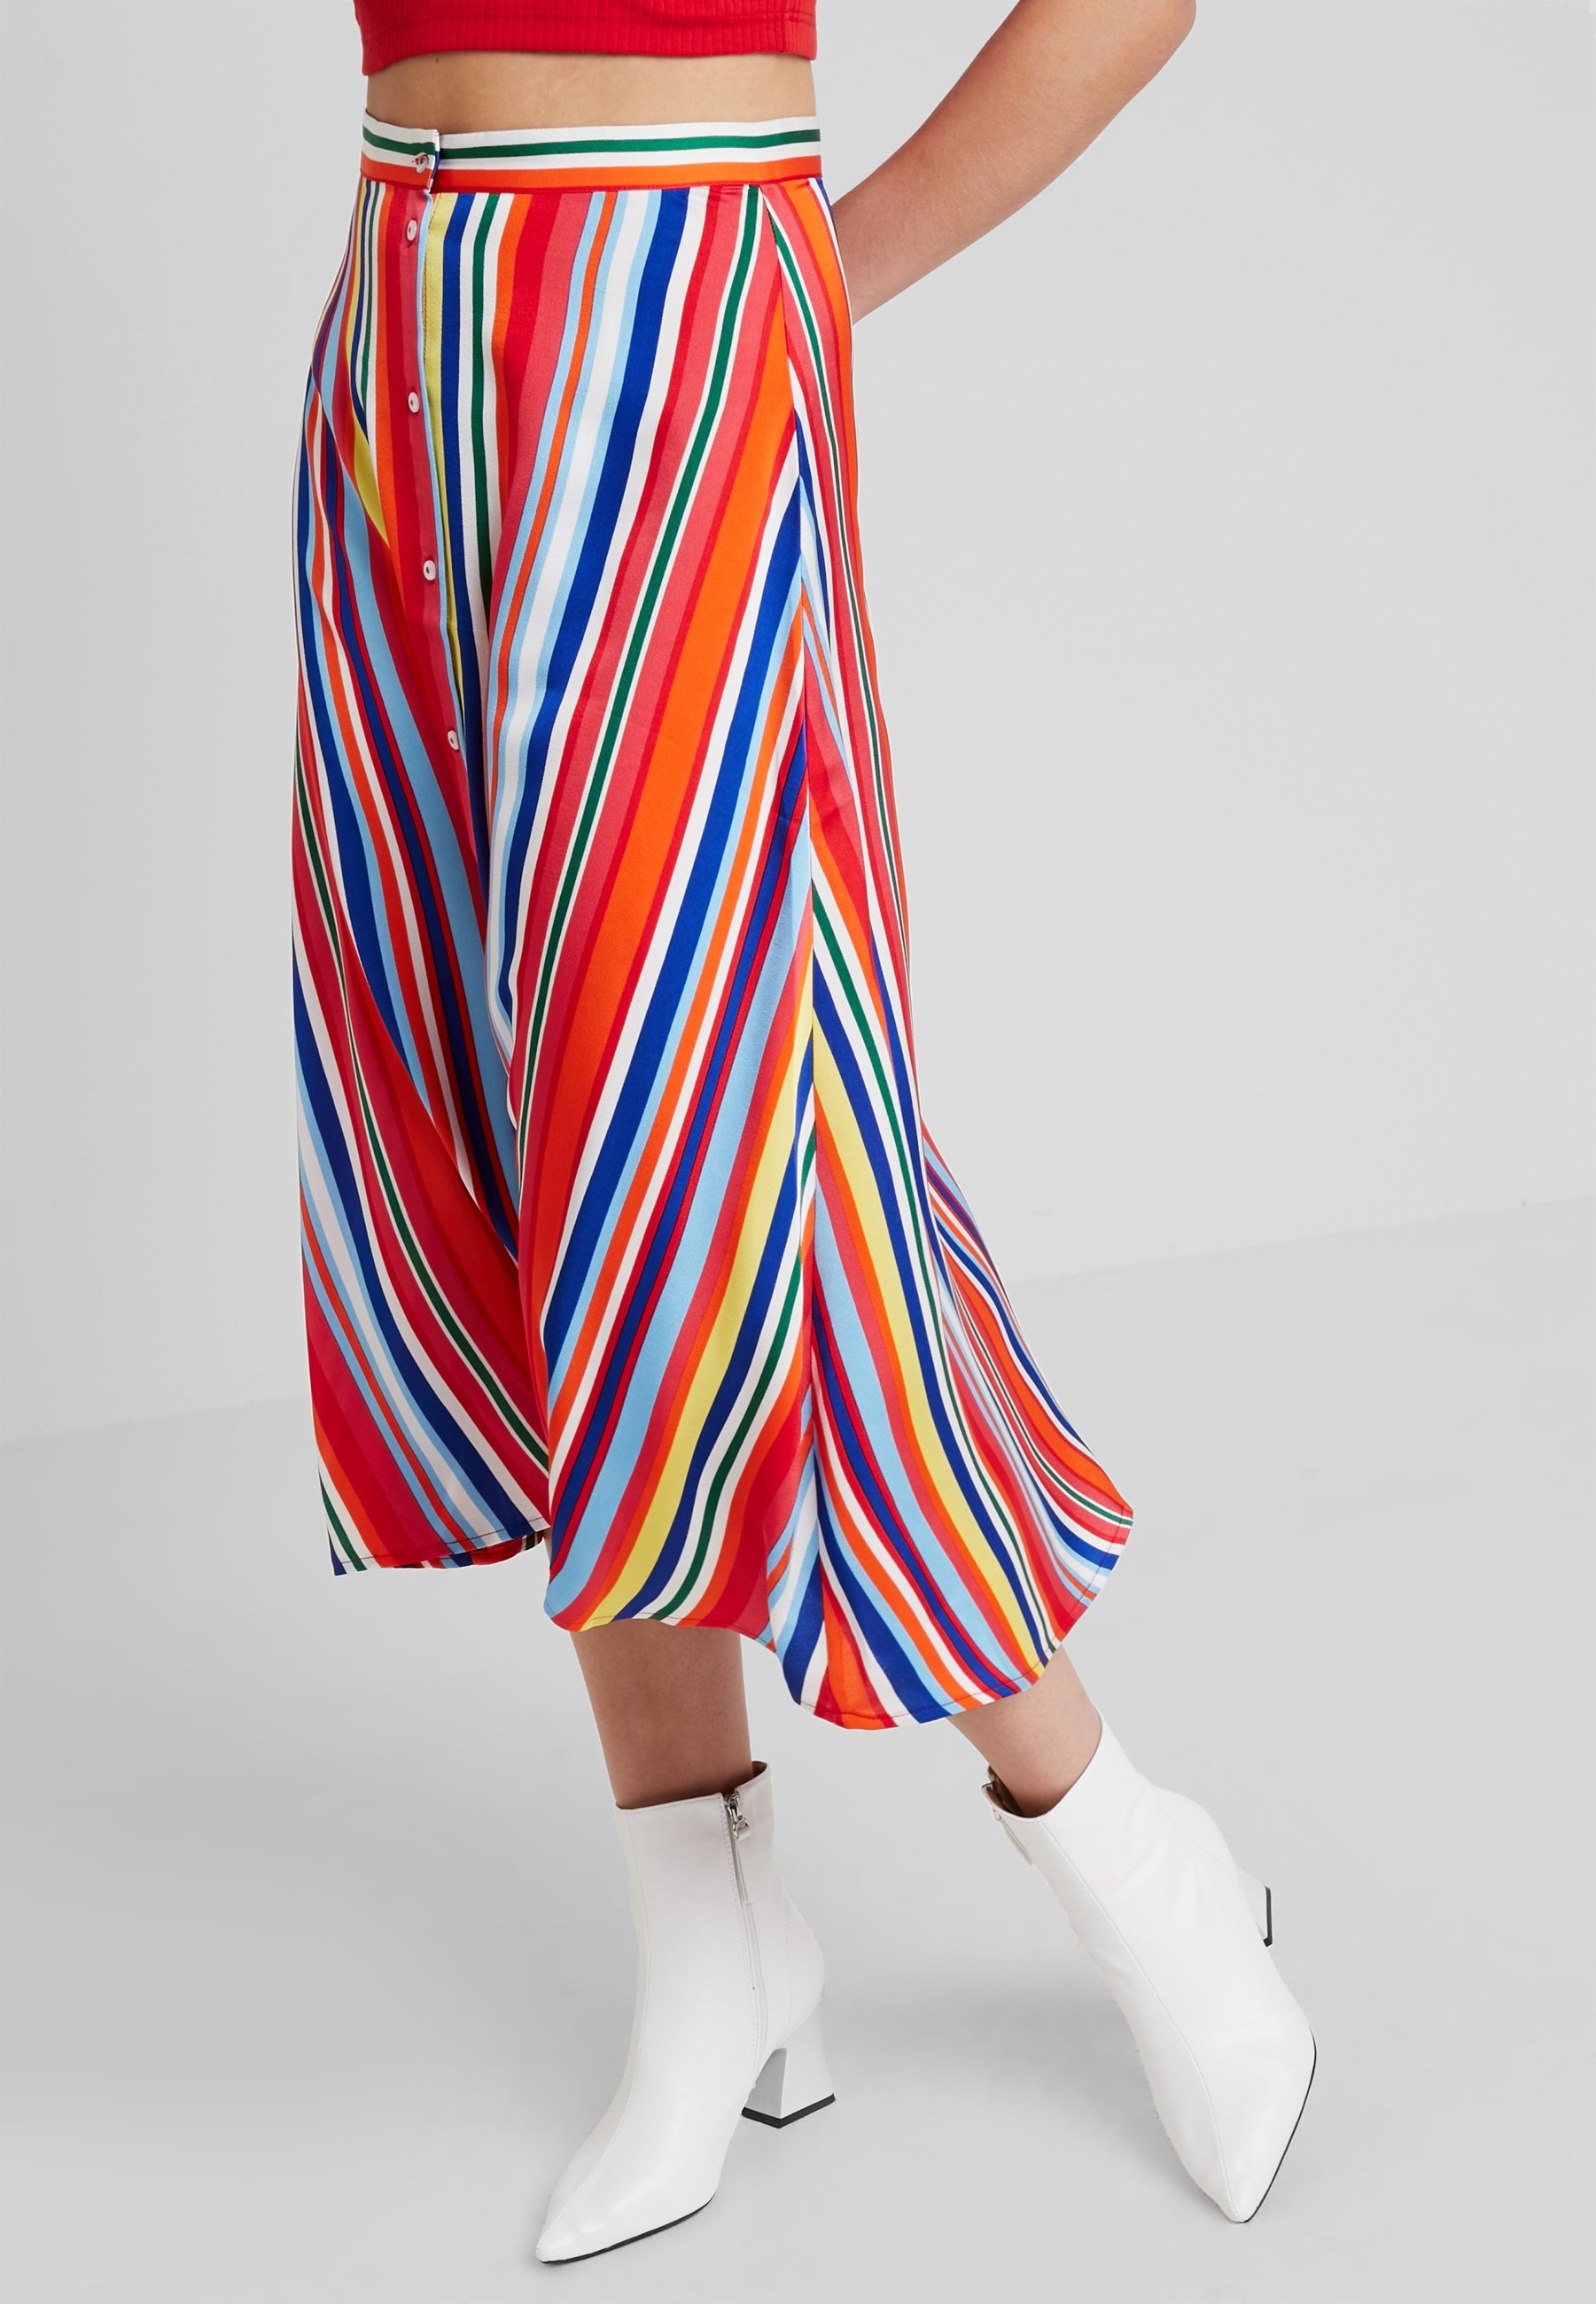 Vila COLOURFULL LONG SKIRT - Gonna lunga cherry tomato